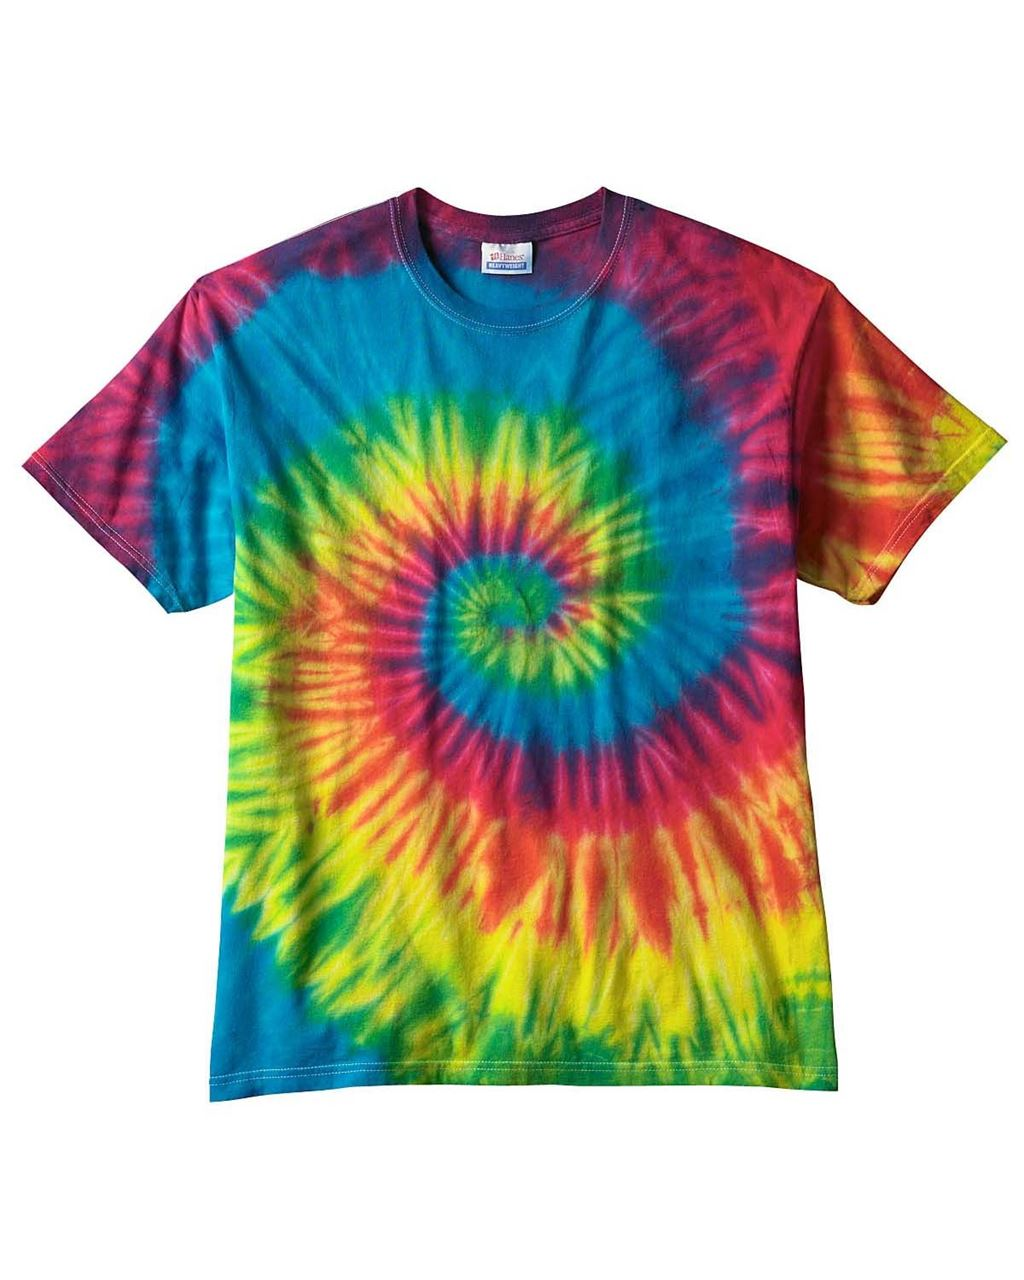 Tie dyed t shirt custom t shirts printing and for Customized tie dye shirts